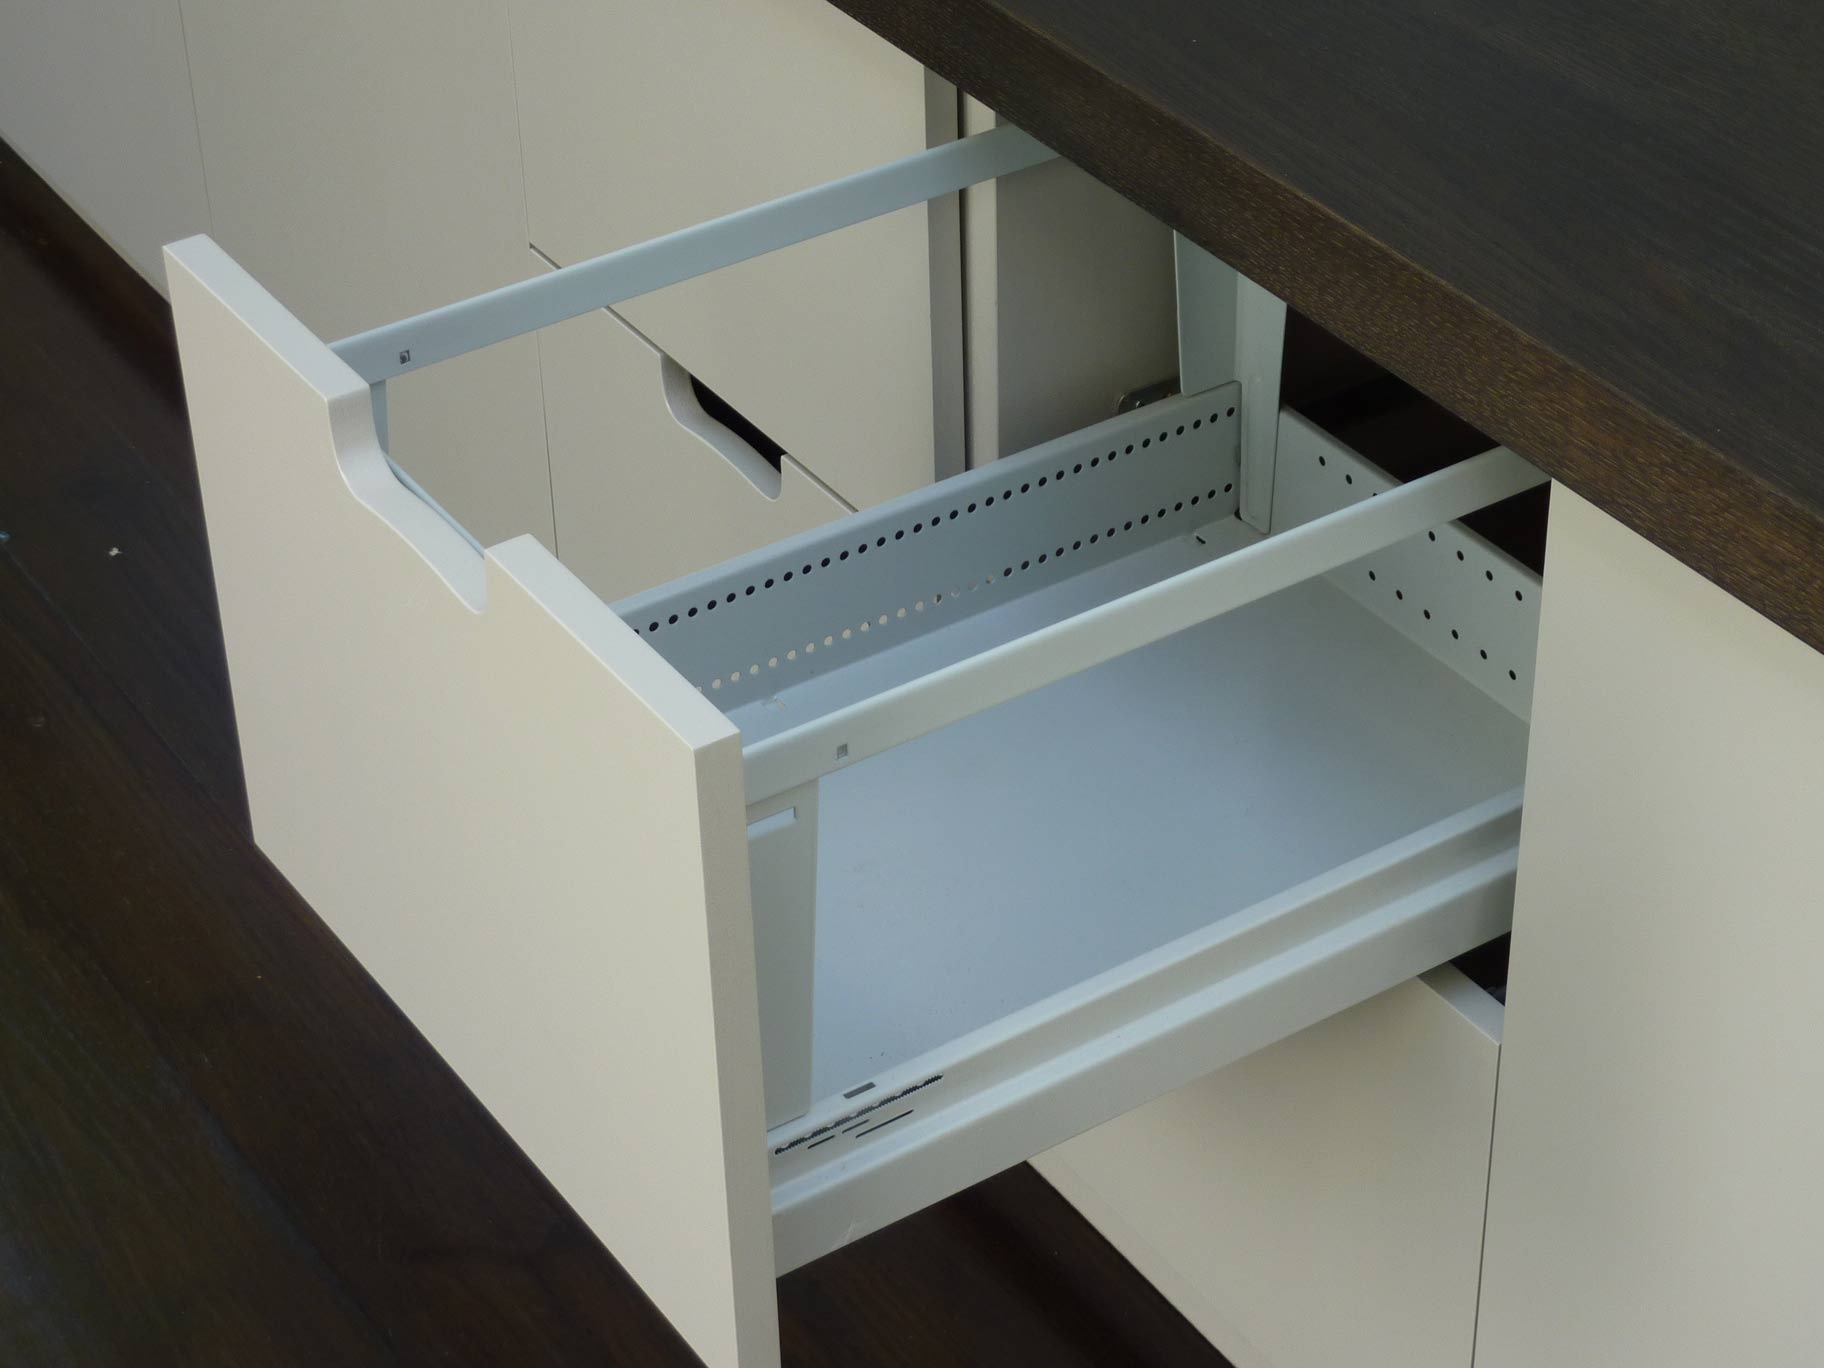 bespoke hanging file drawer for A4 files